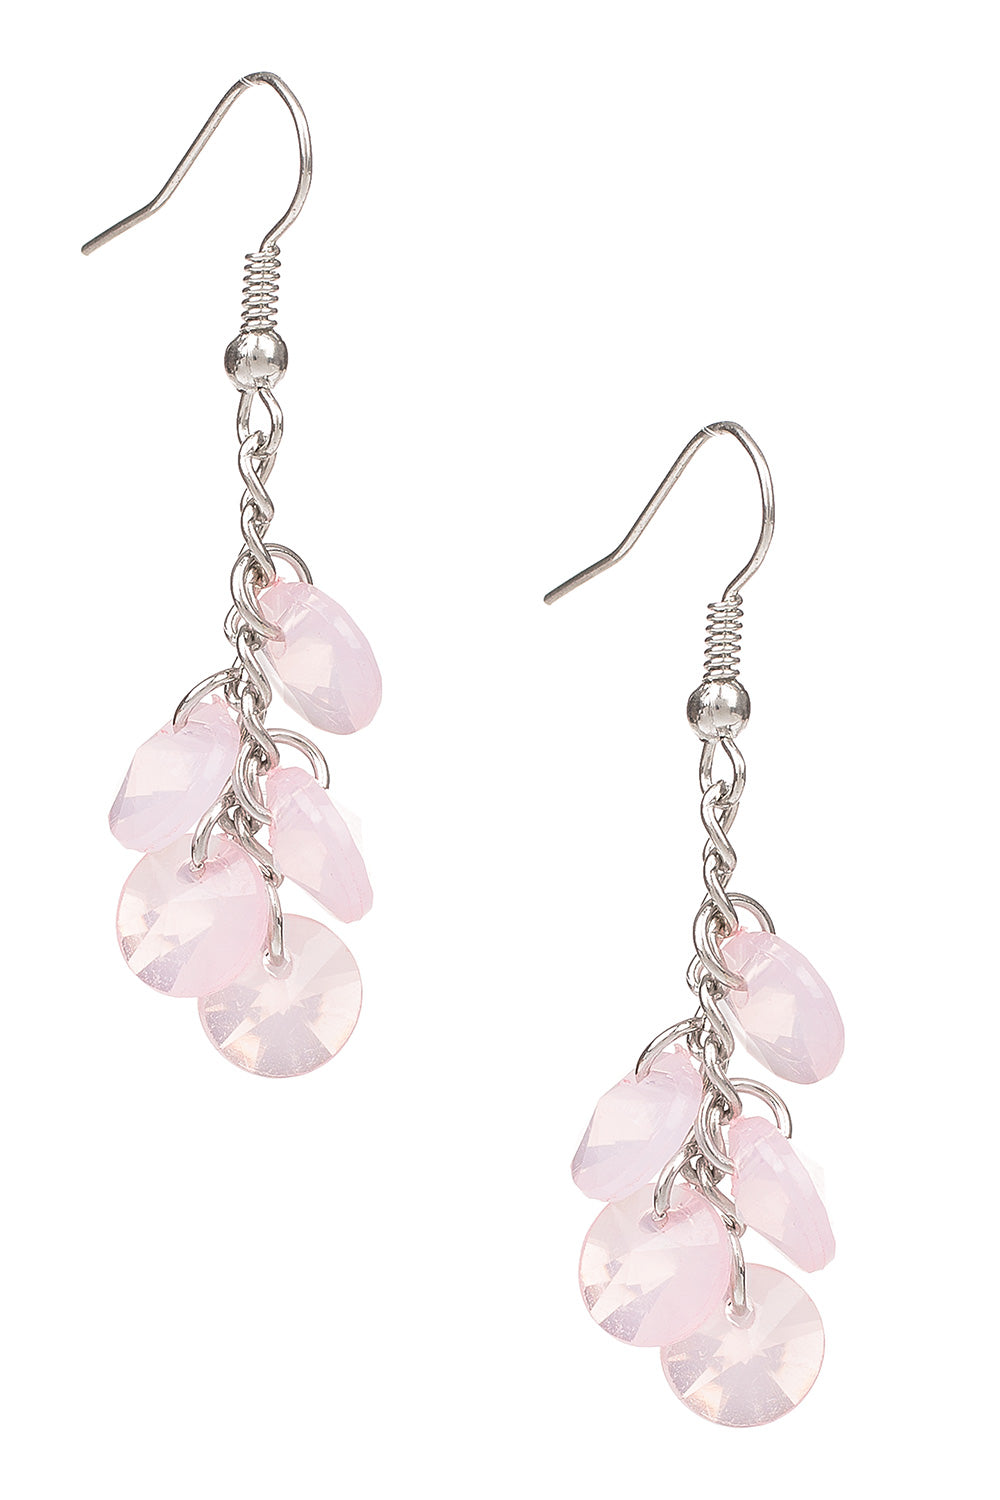 Type 2 Pristine Petals Earrings